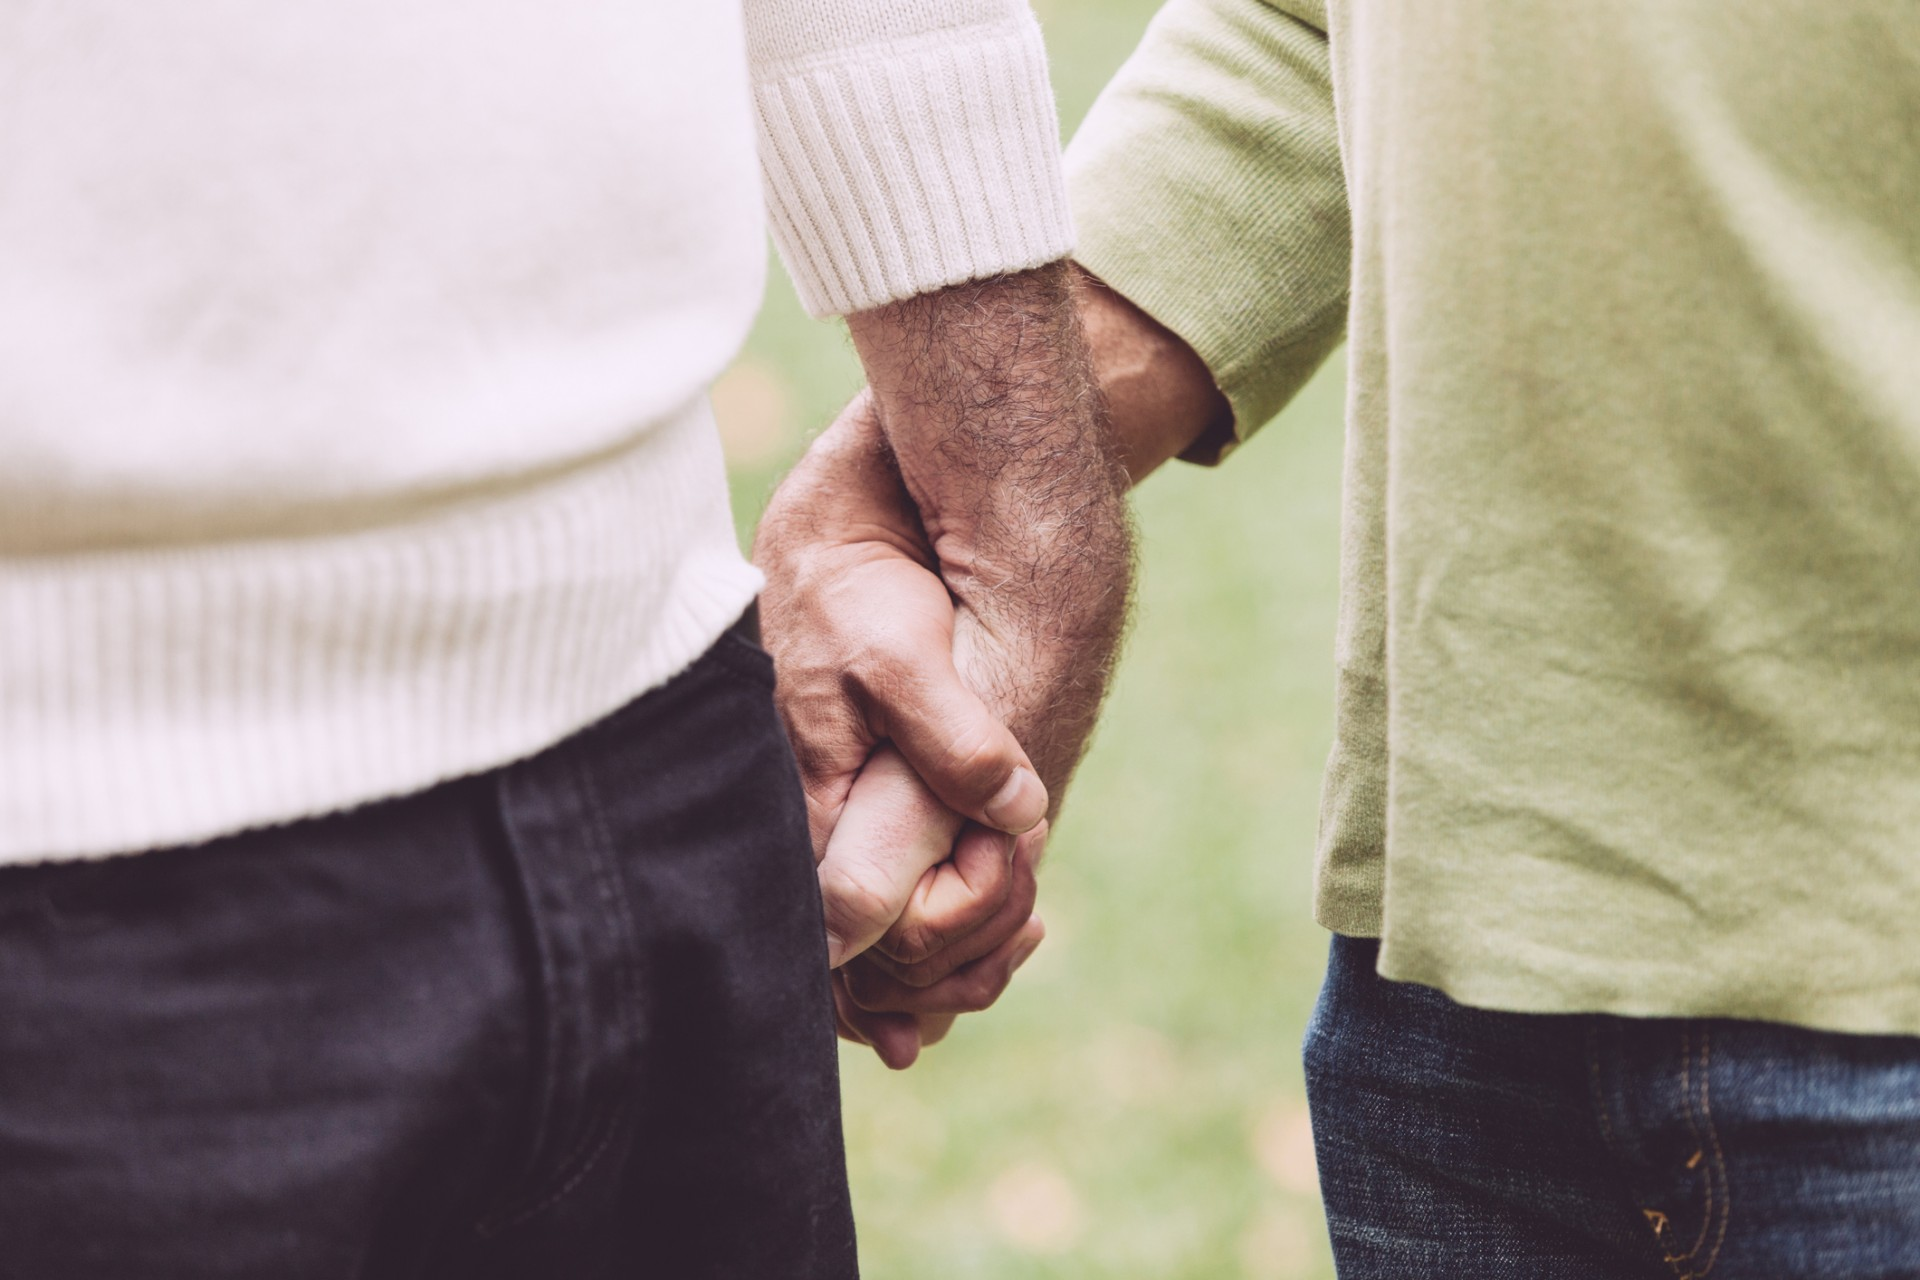 Supreme Court ruling gives gay married couples equal pension rights